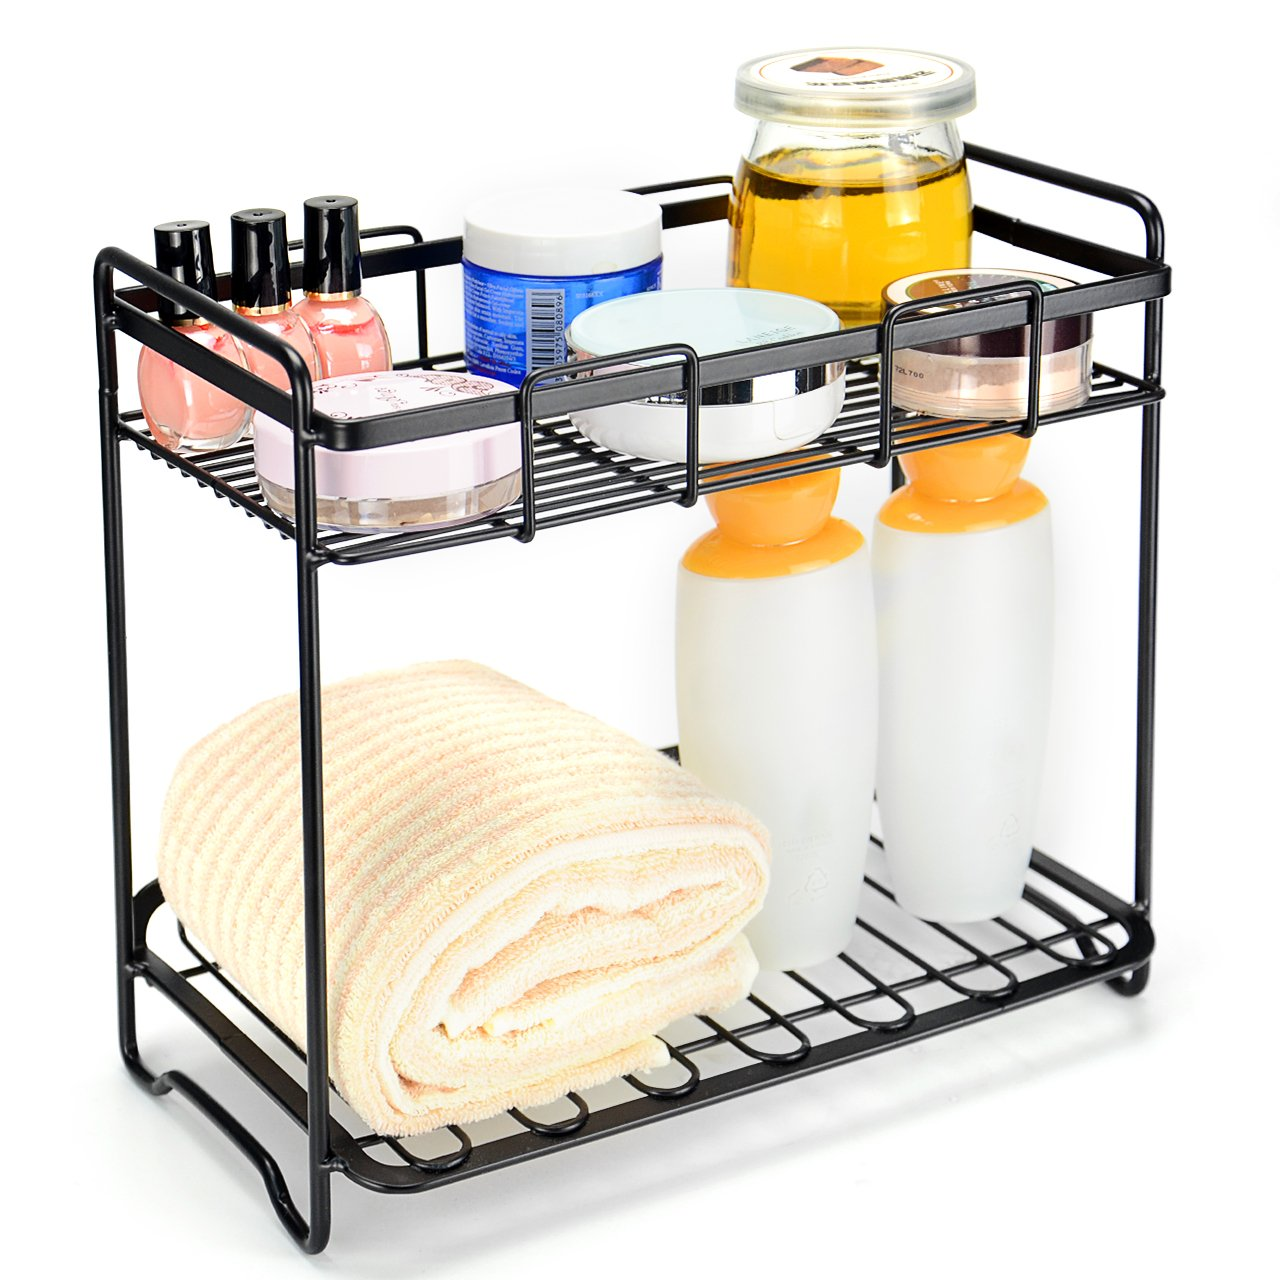 SortWise 2-Tier Multi-Purpose Rack Kitchen Bathroom Cosmetic Organizer Storage Holder Wire Shelf for Spice Jars Shampoo Nail Polish (Black)